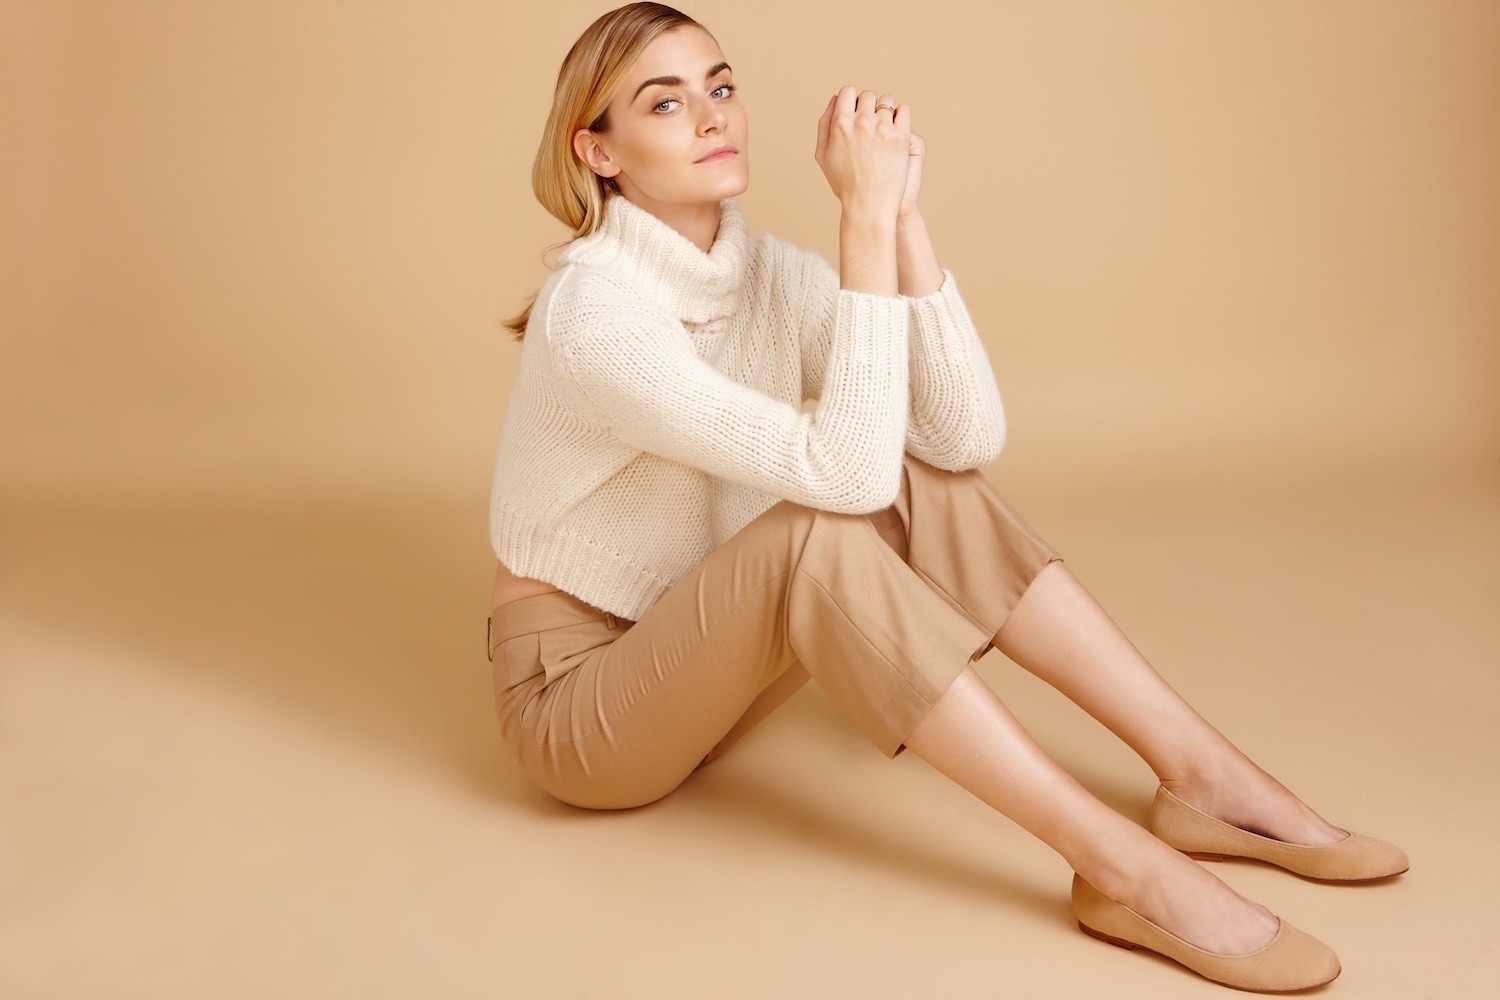 A model wearing camel colored pants and shoes and a white sweater